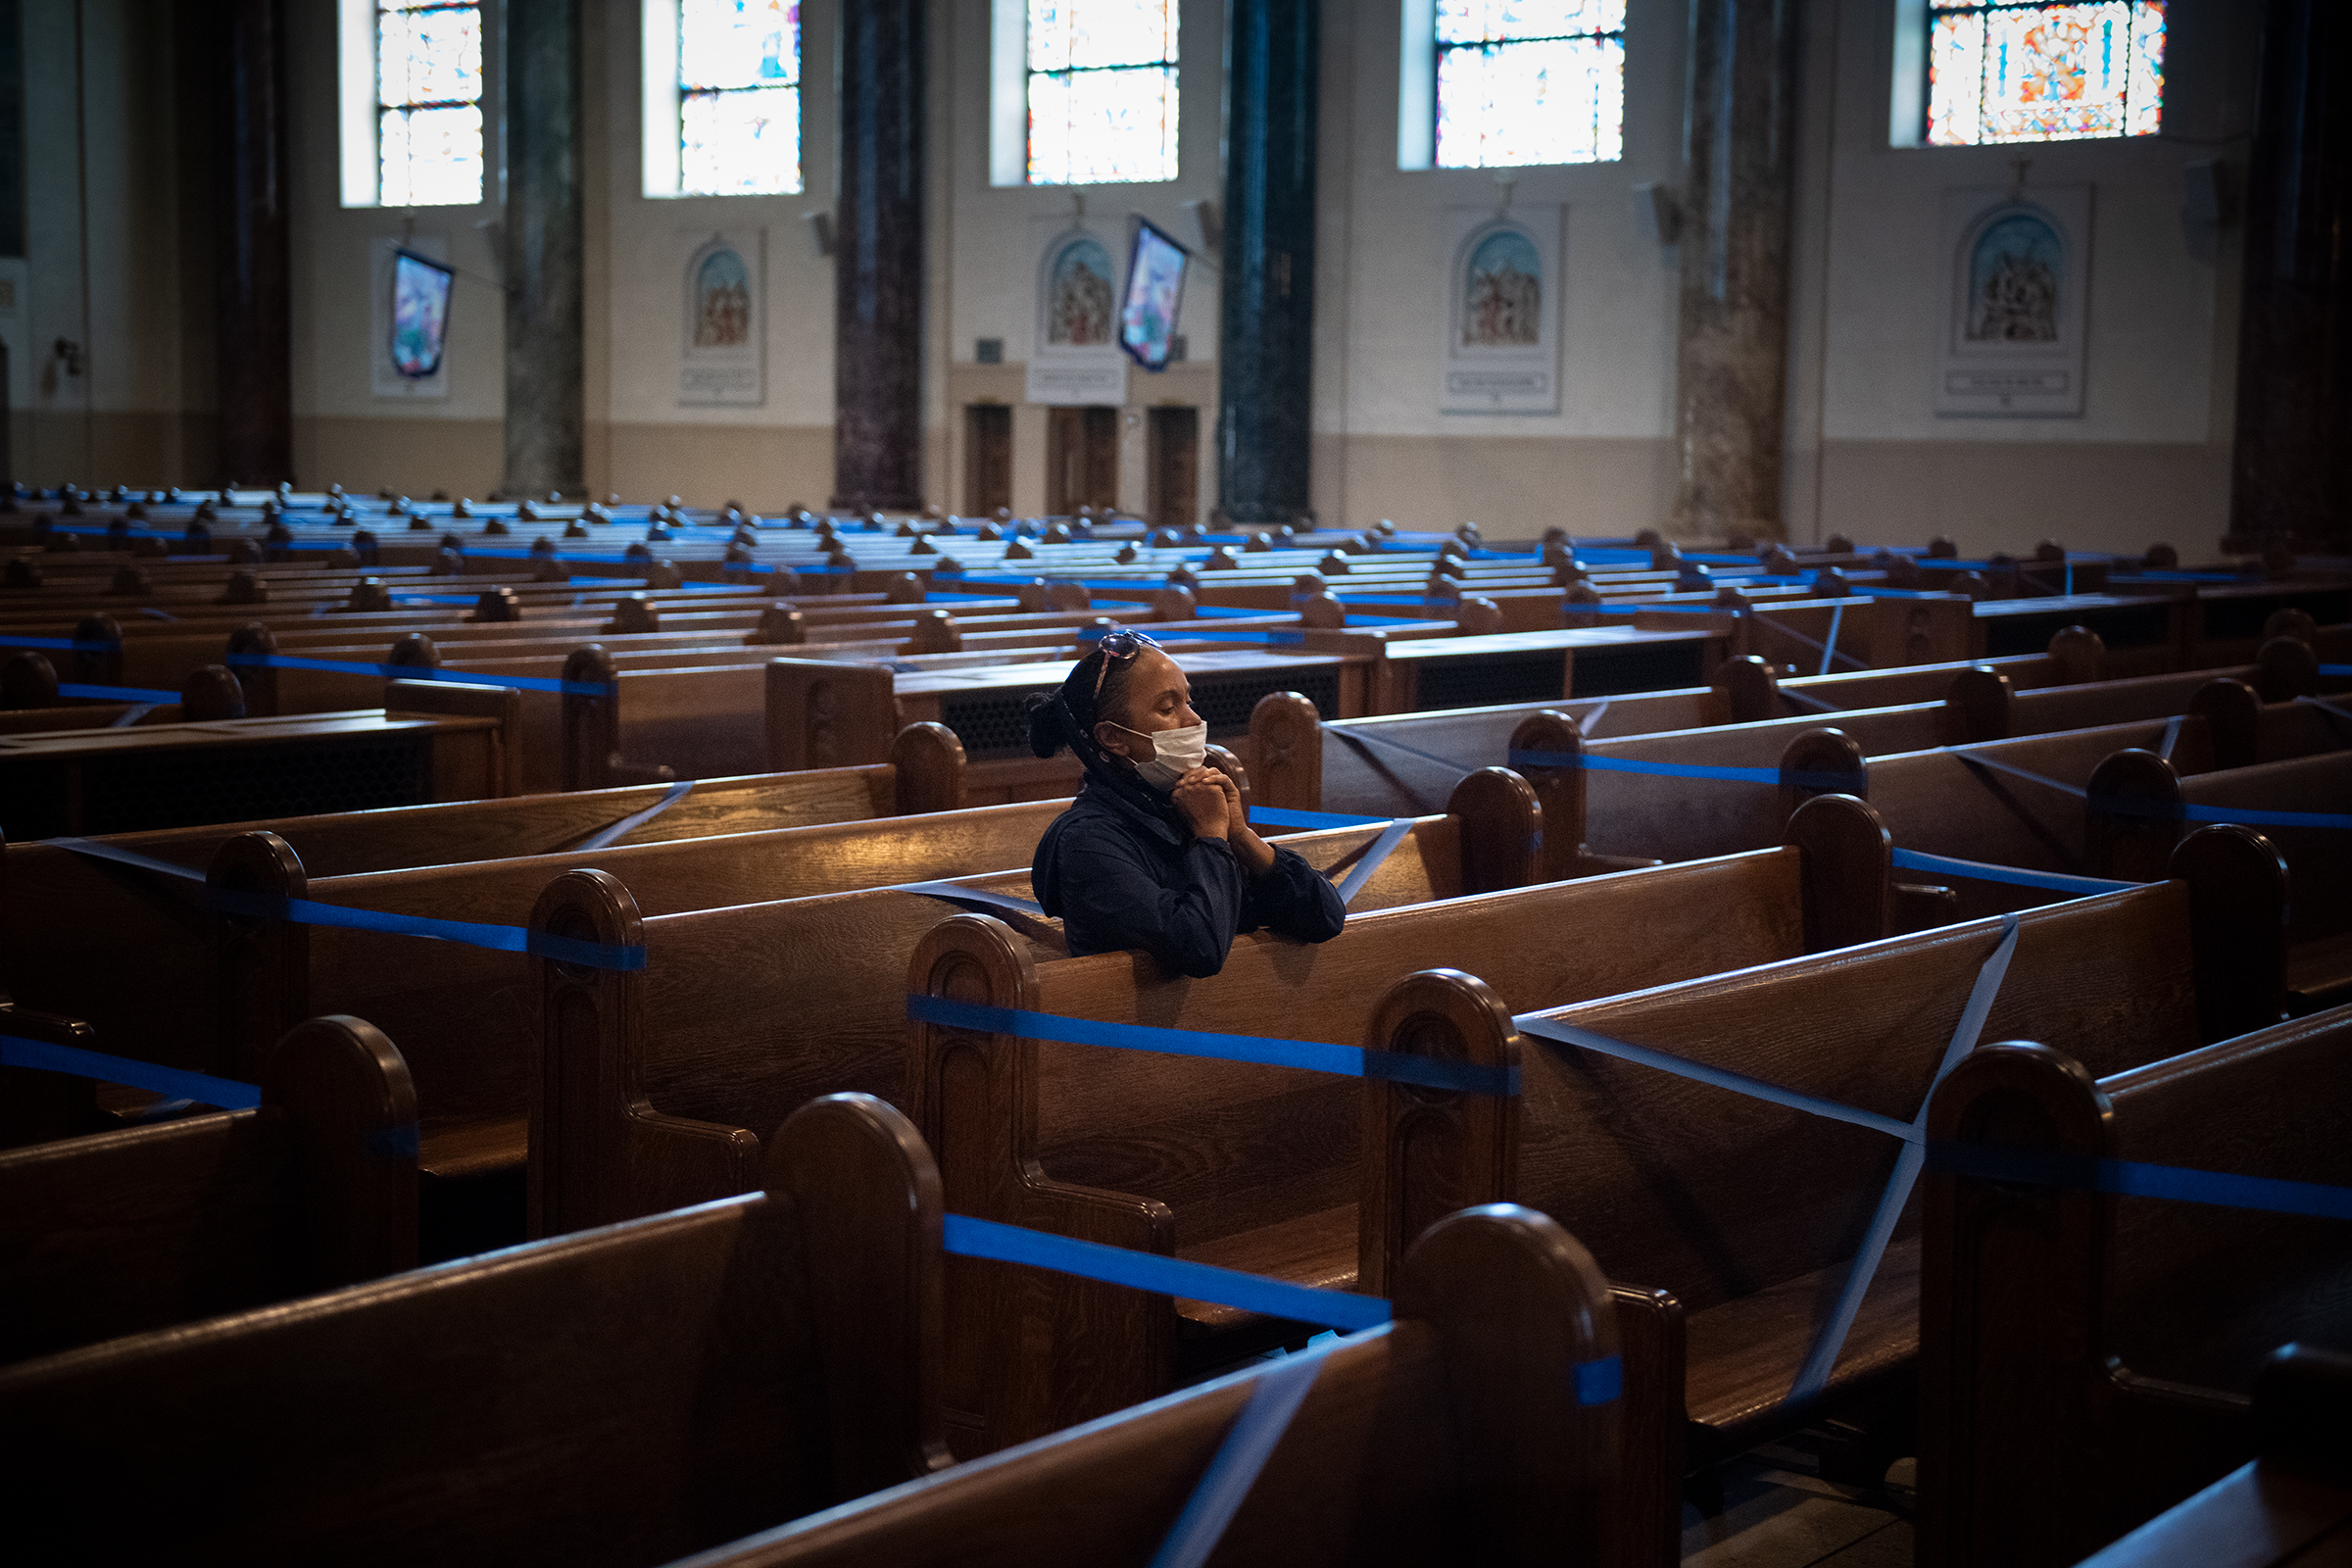 A woman prays alone, amid taped-off pews to comply with social distancing guideline. [Jeff Bruno]